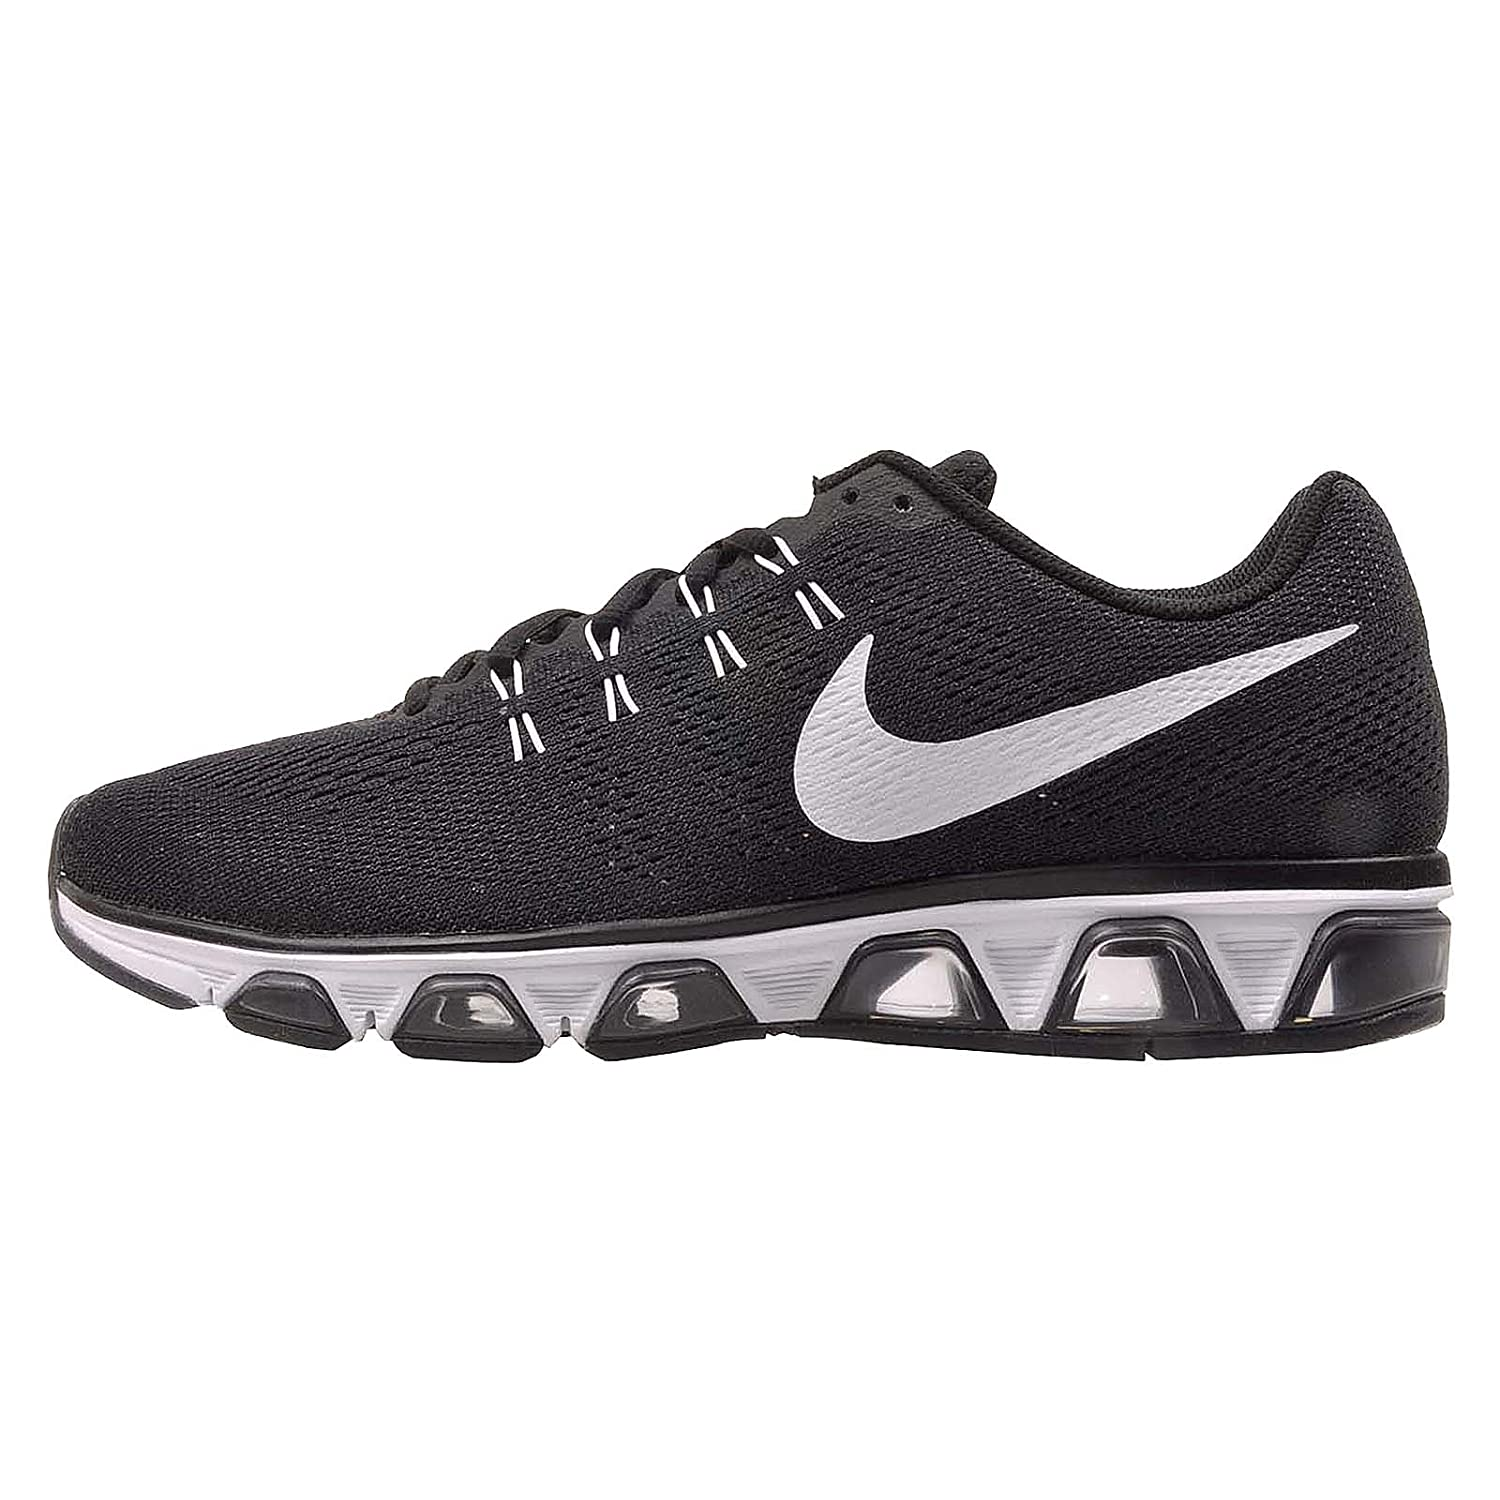 san francisco 11ca0 e9419 Nike Womens Nik Air Max Tailwind 6 Running Shoe (12, Black White Anthracite)   Buy Online at Low Prices in India - Amazon.in